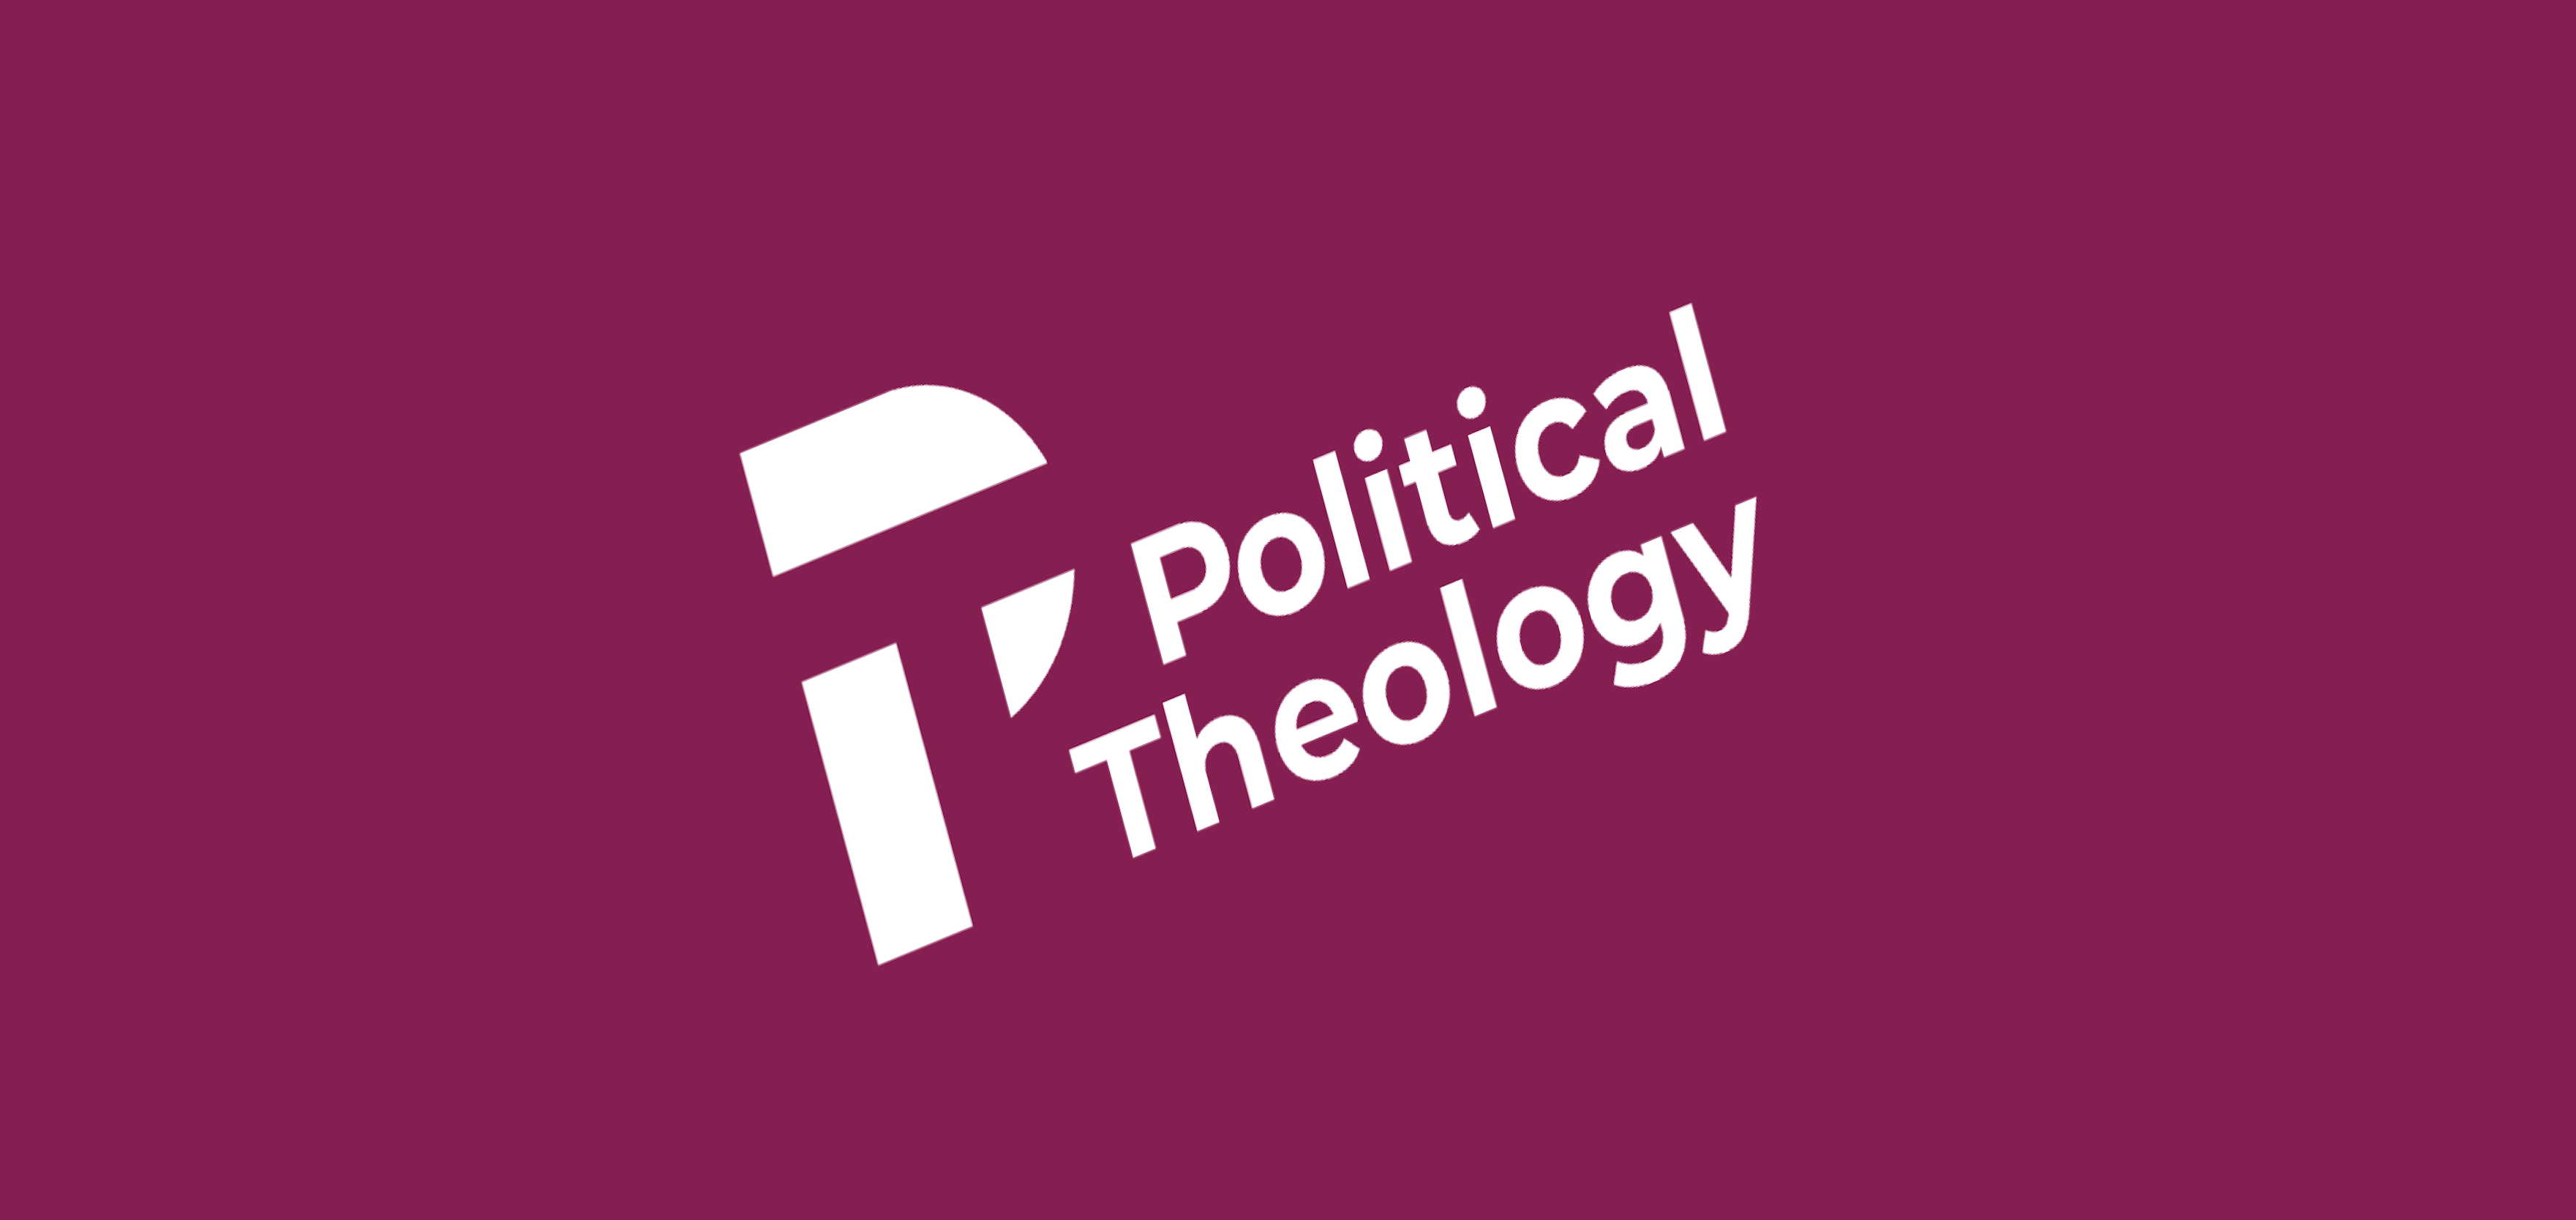 Political Theology Network Seeks Radical Anti-Imperial Perspectives on Religion and Politics